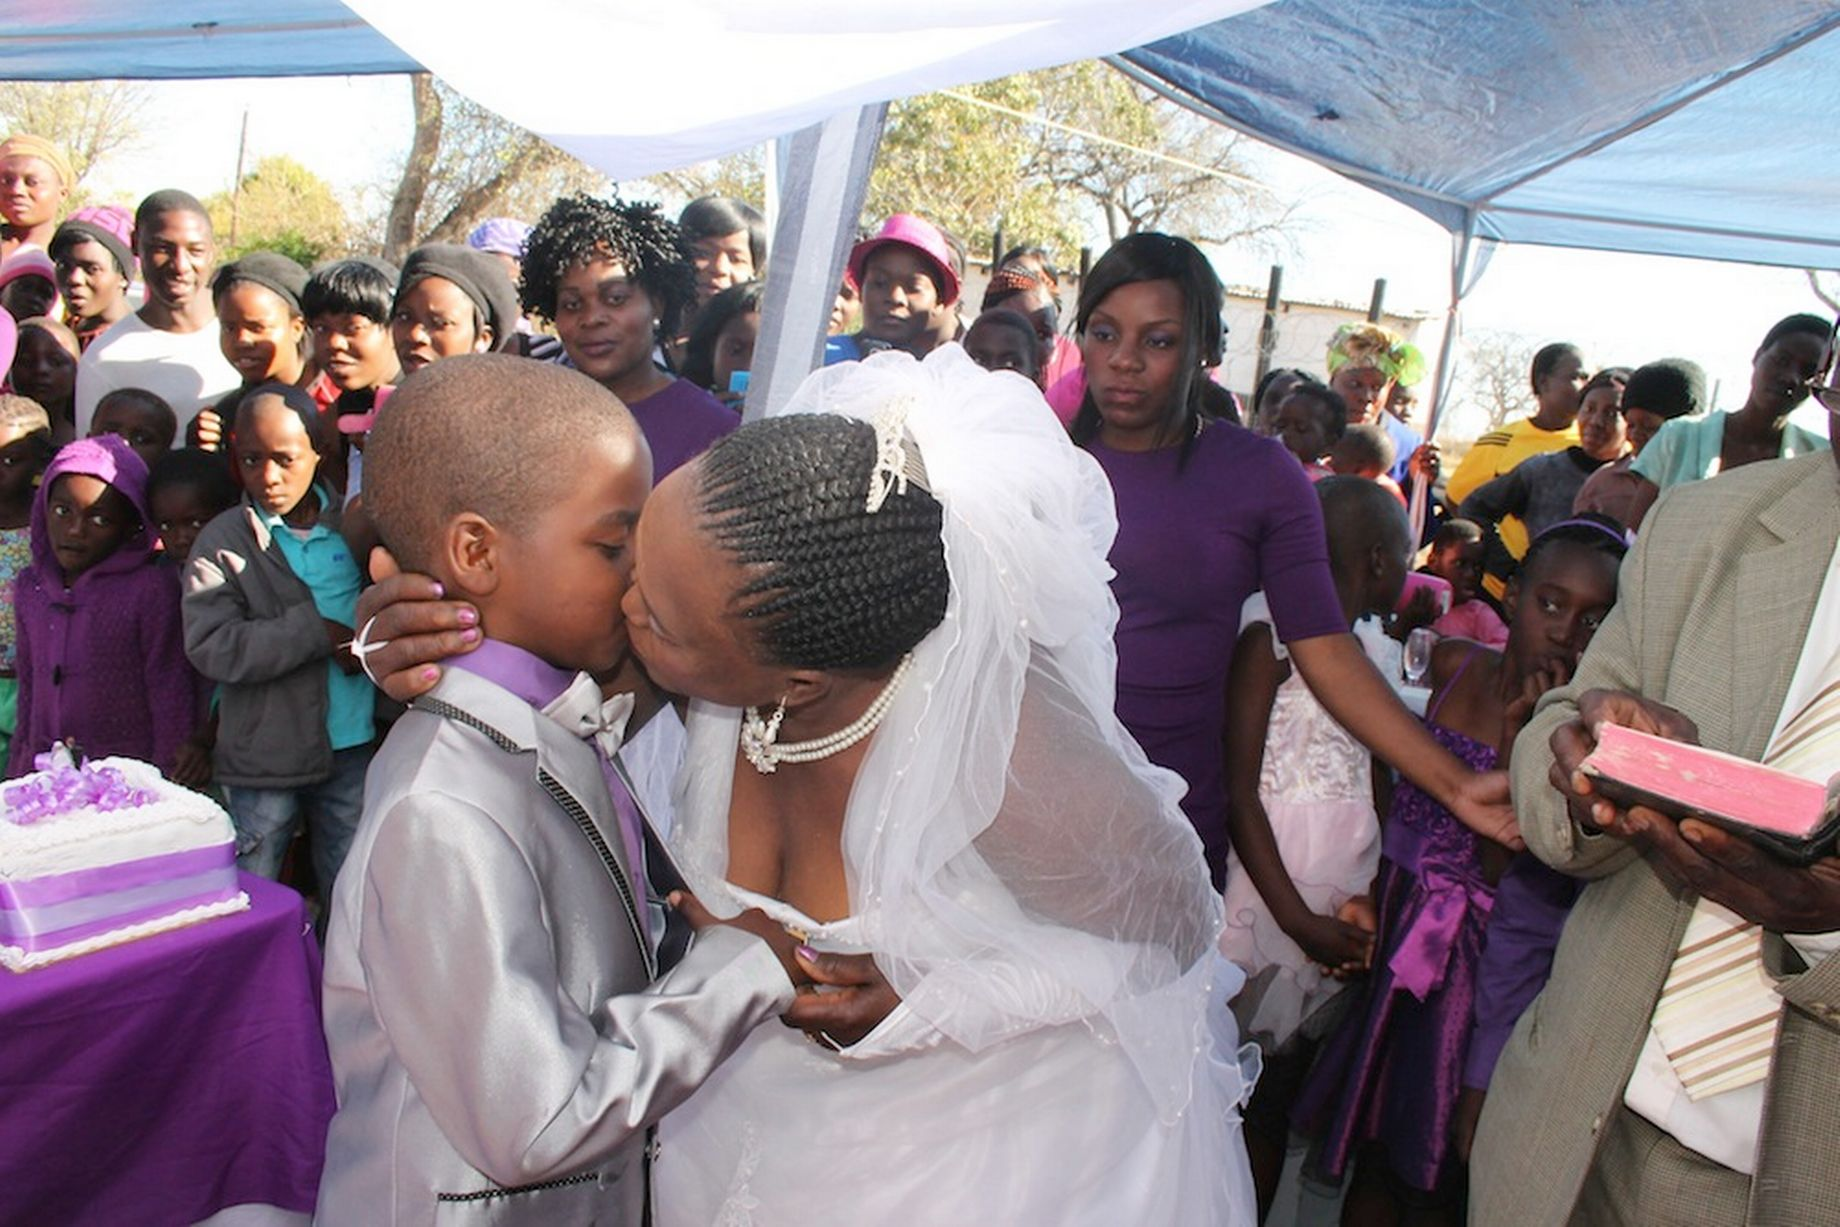 South African Schoolboy Aged NINE Marries 62-Year-Old Mother of five - For Second Time